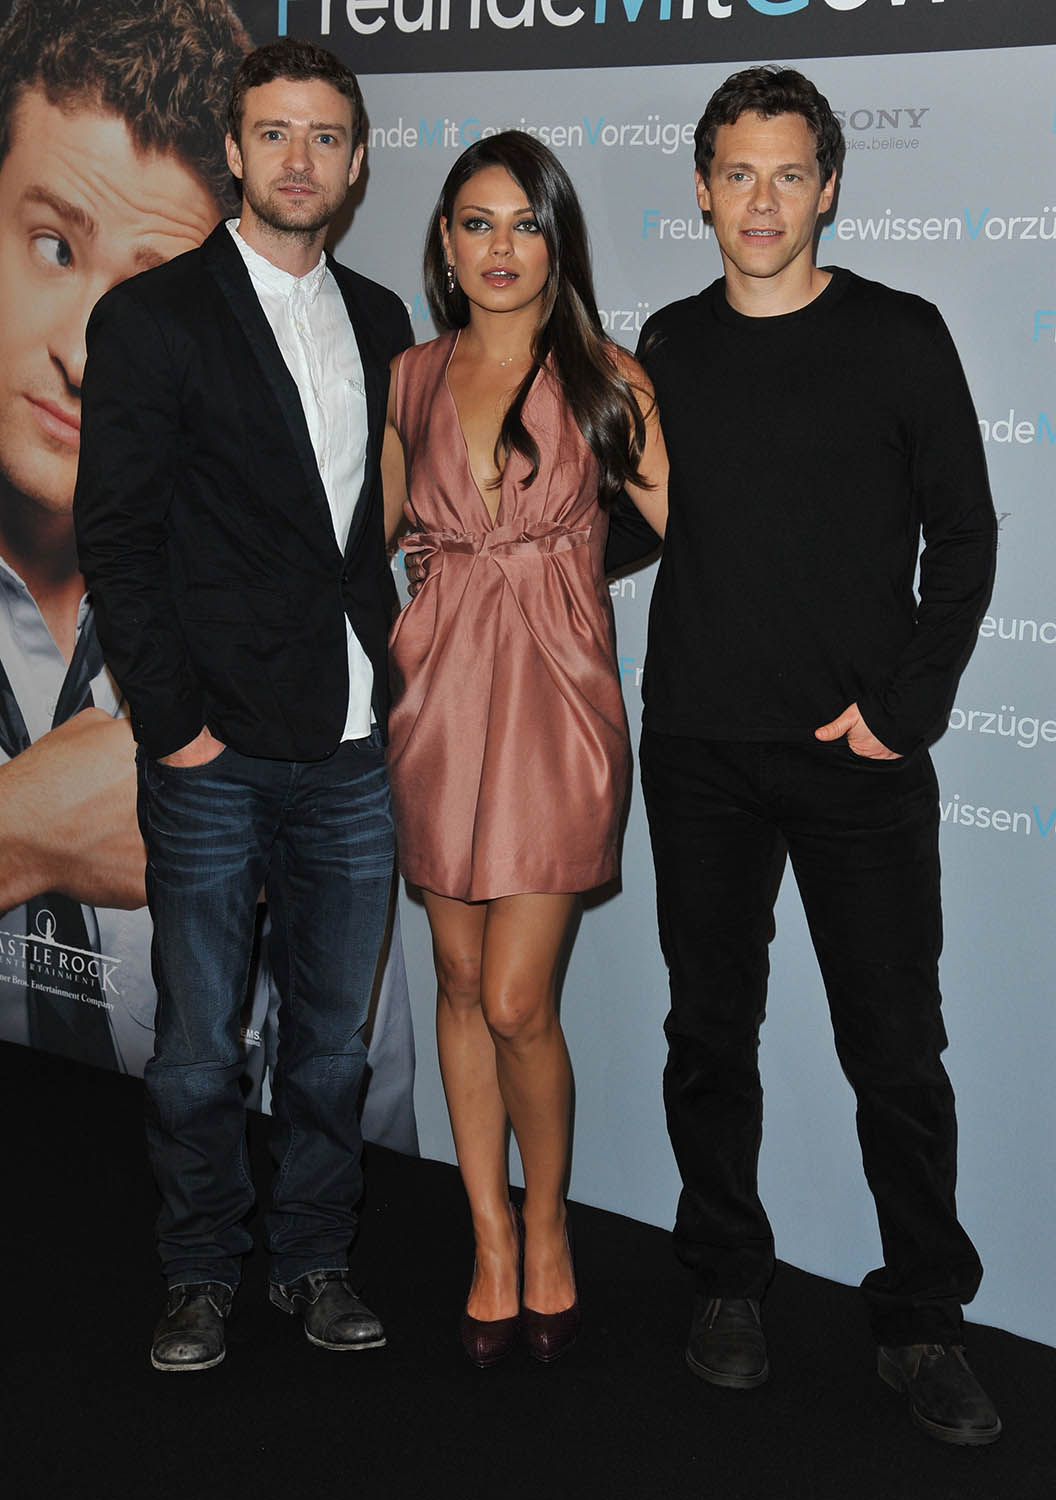 Mila Kunis and Justin: Những người bạn with Benefits Photocall in Berlin, Jul 29